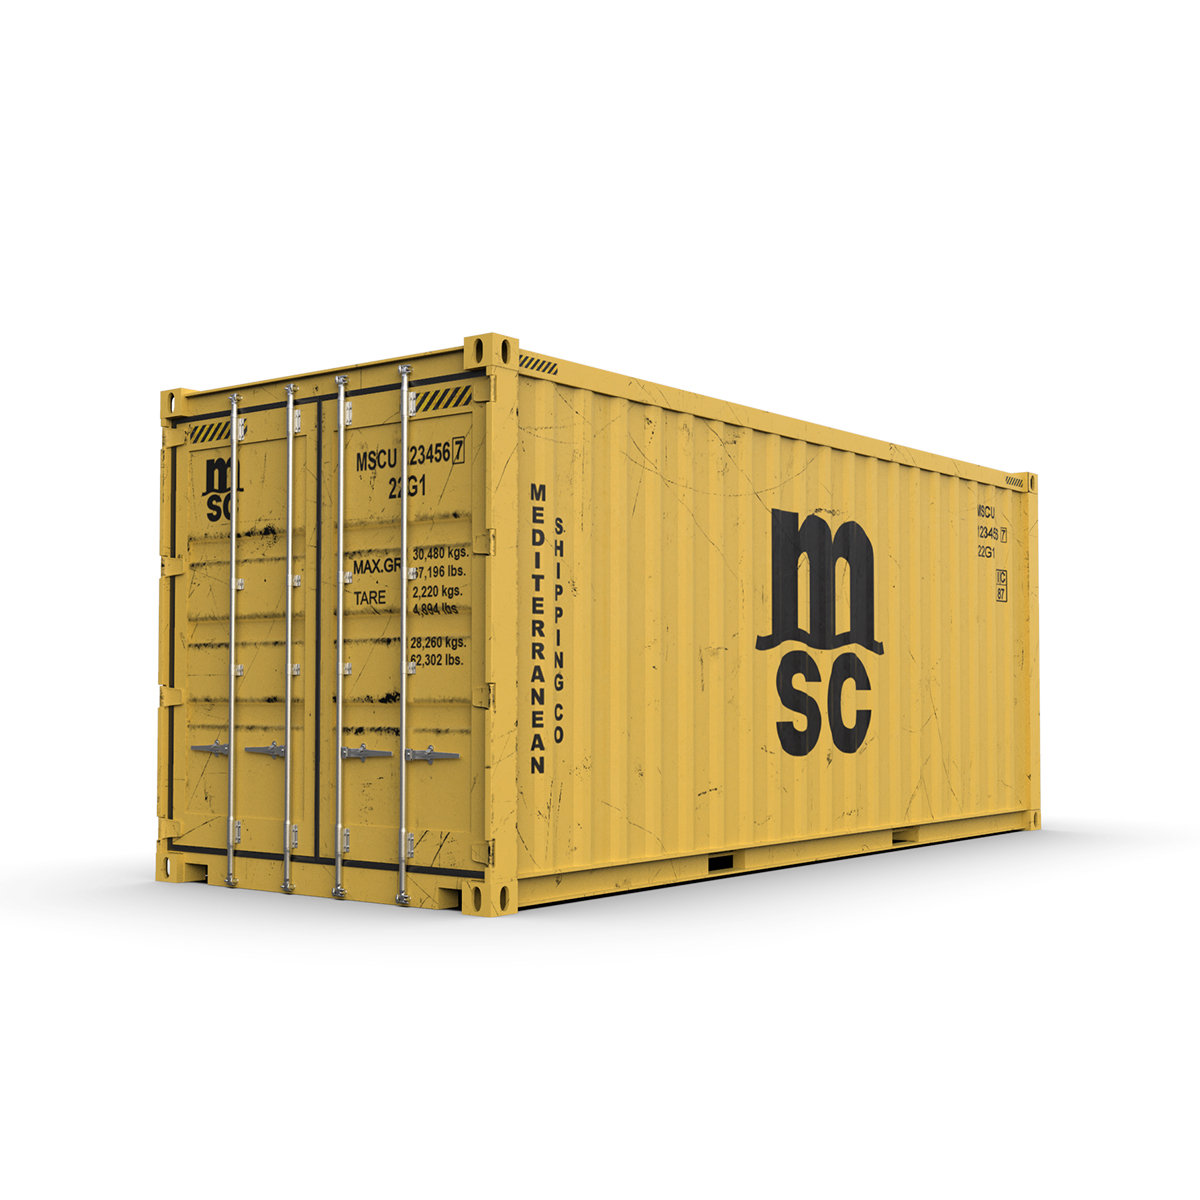 20 feet msc standard shipping container 3d model 3ds max fbx ma mb obj 278382